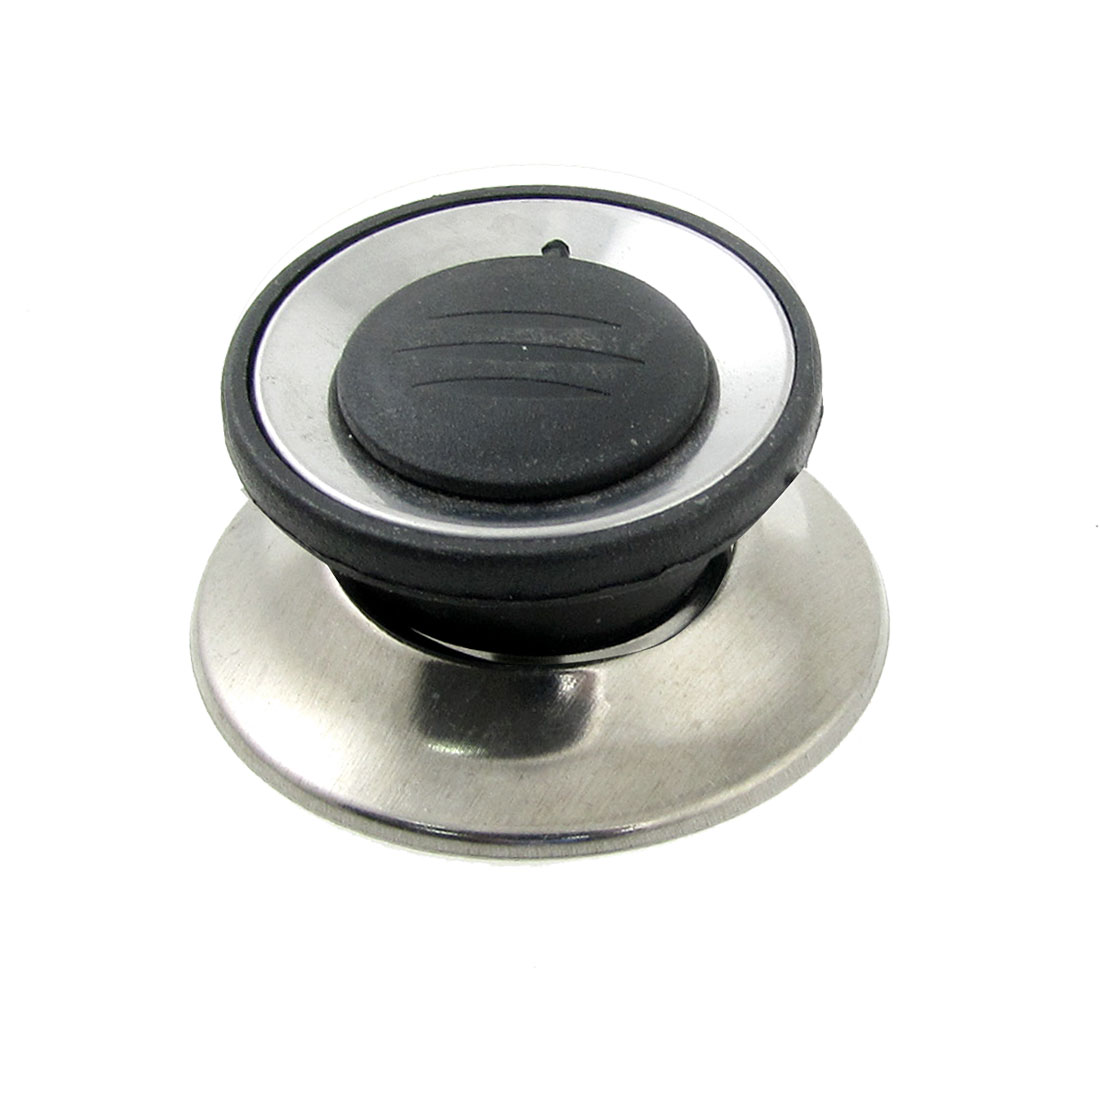 Plastic Metal 2 Colors Cookware Pot Pan Skillet Lid Replacement Knob